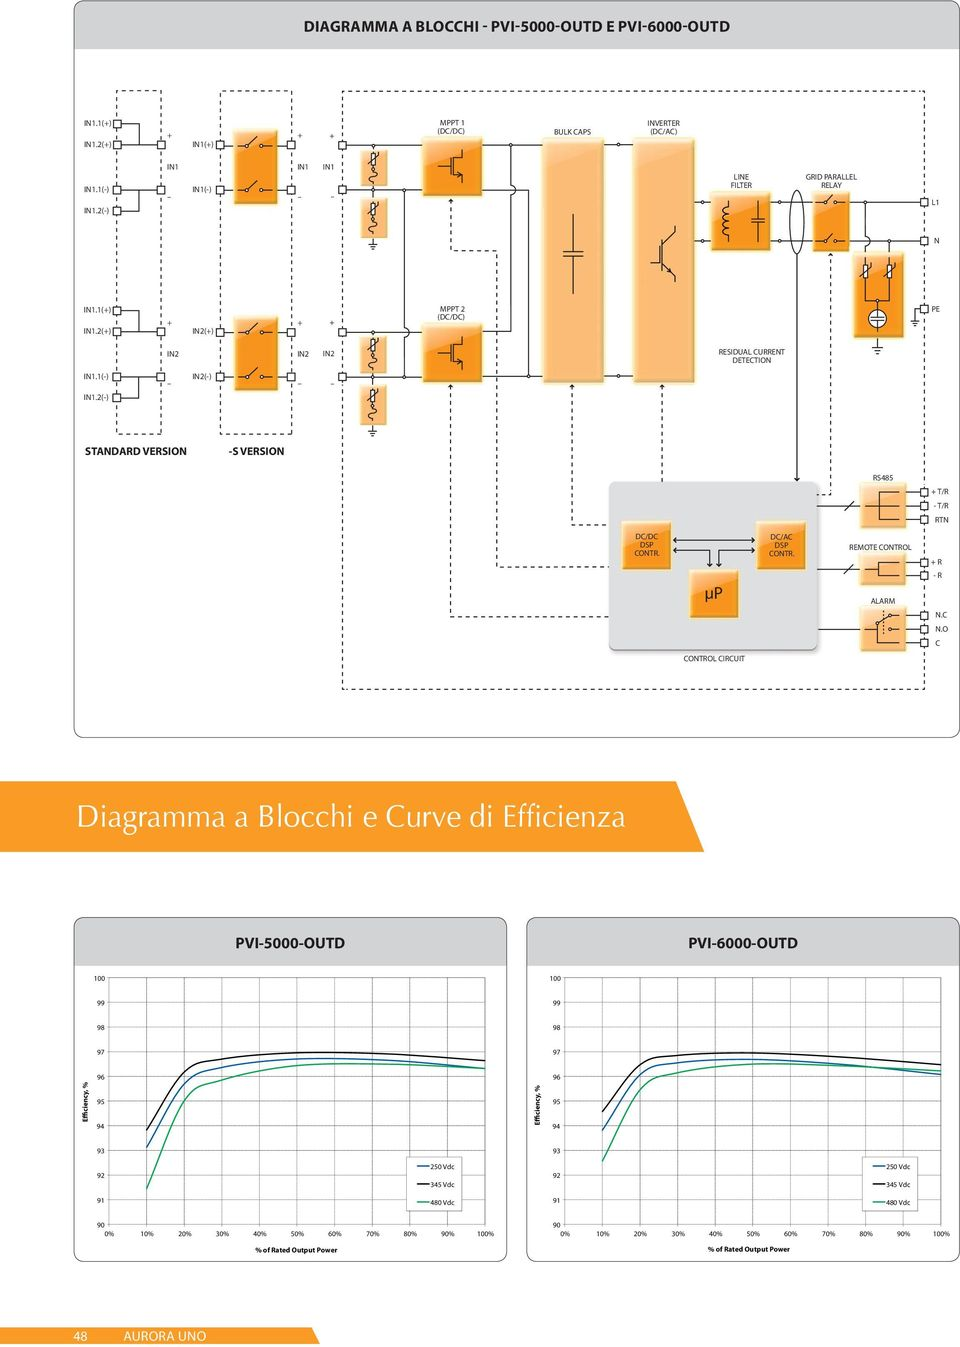 O C CONTROL CIRCUIT Diagramma a Blocchi e Curve di Efficienza PVI5000OUTD PVI6000OUTD 100 100 99 99 98 98 97 97 Efficiency, % 96 94 Efficiency, % 96 94 93 93 92 250